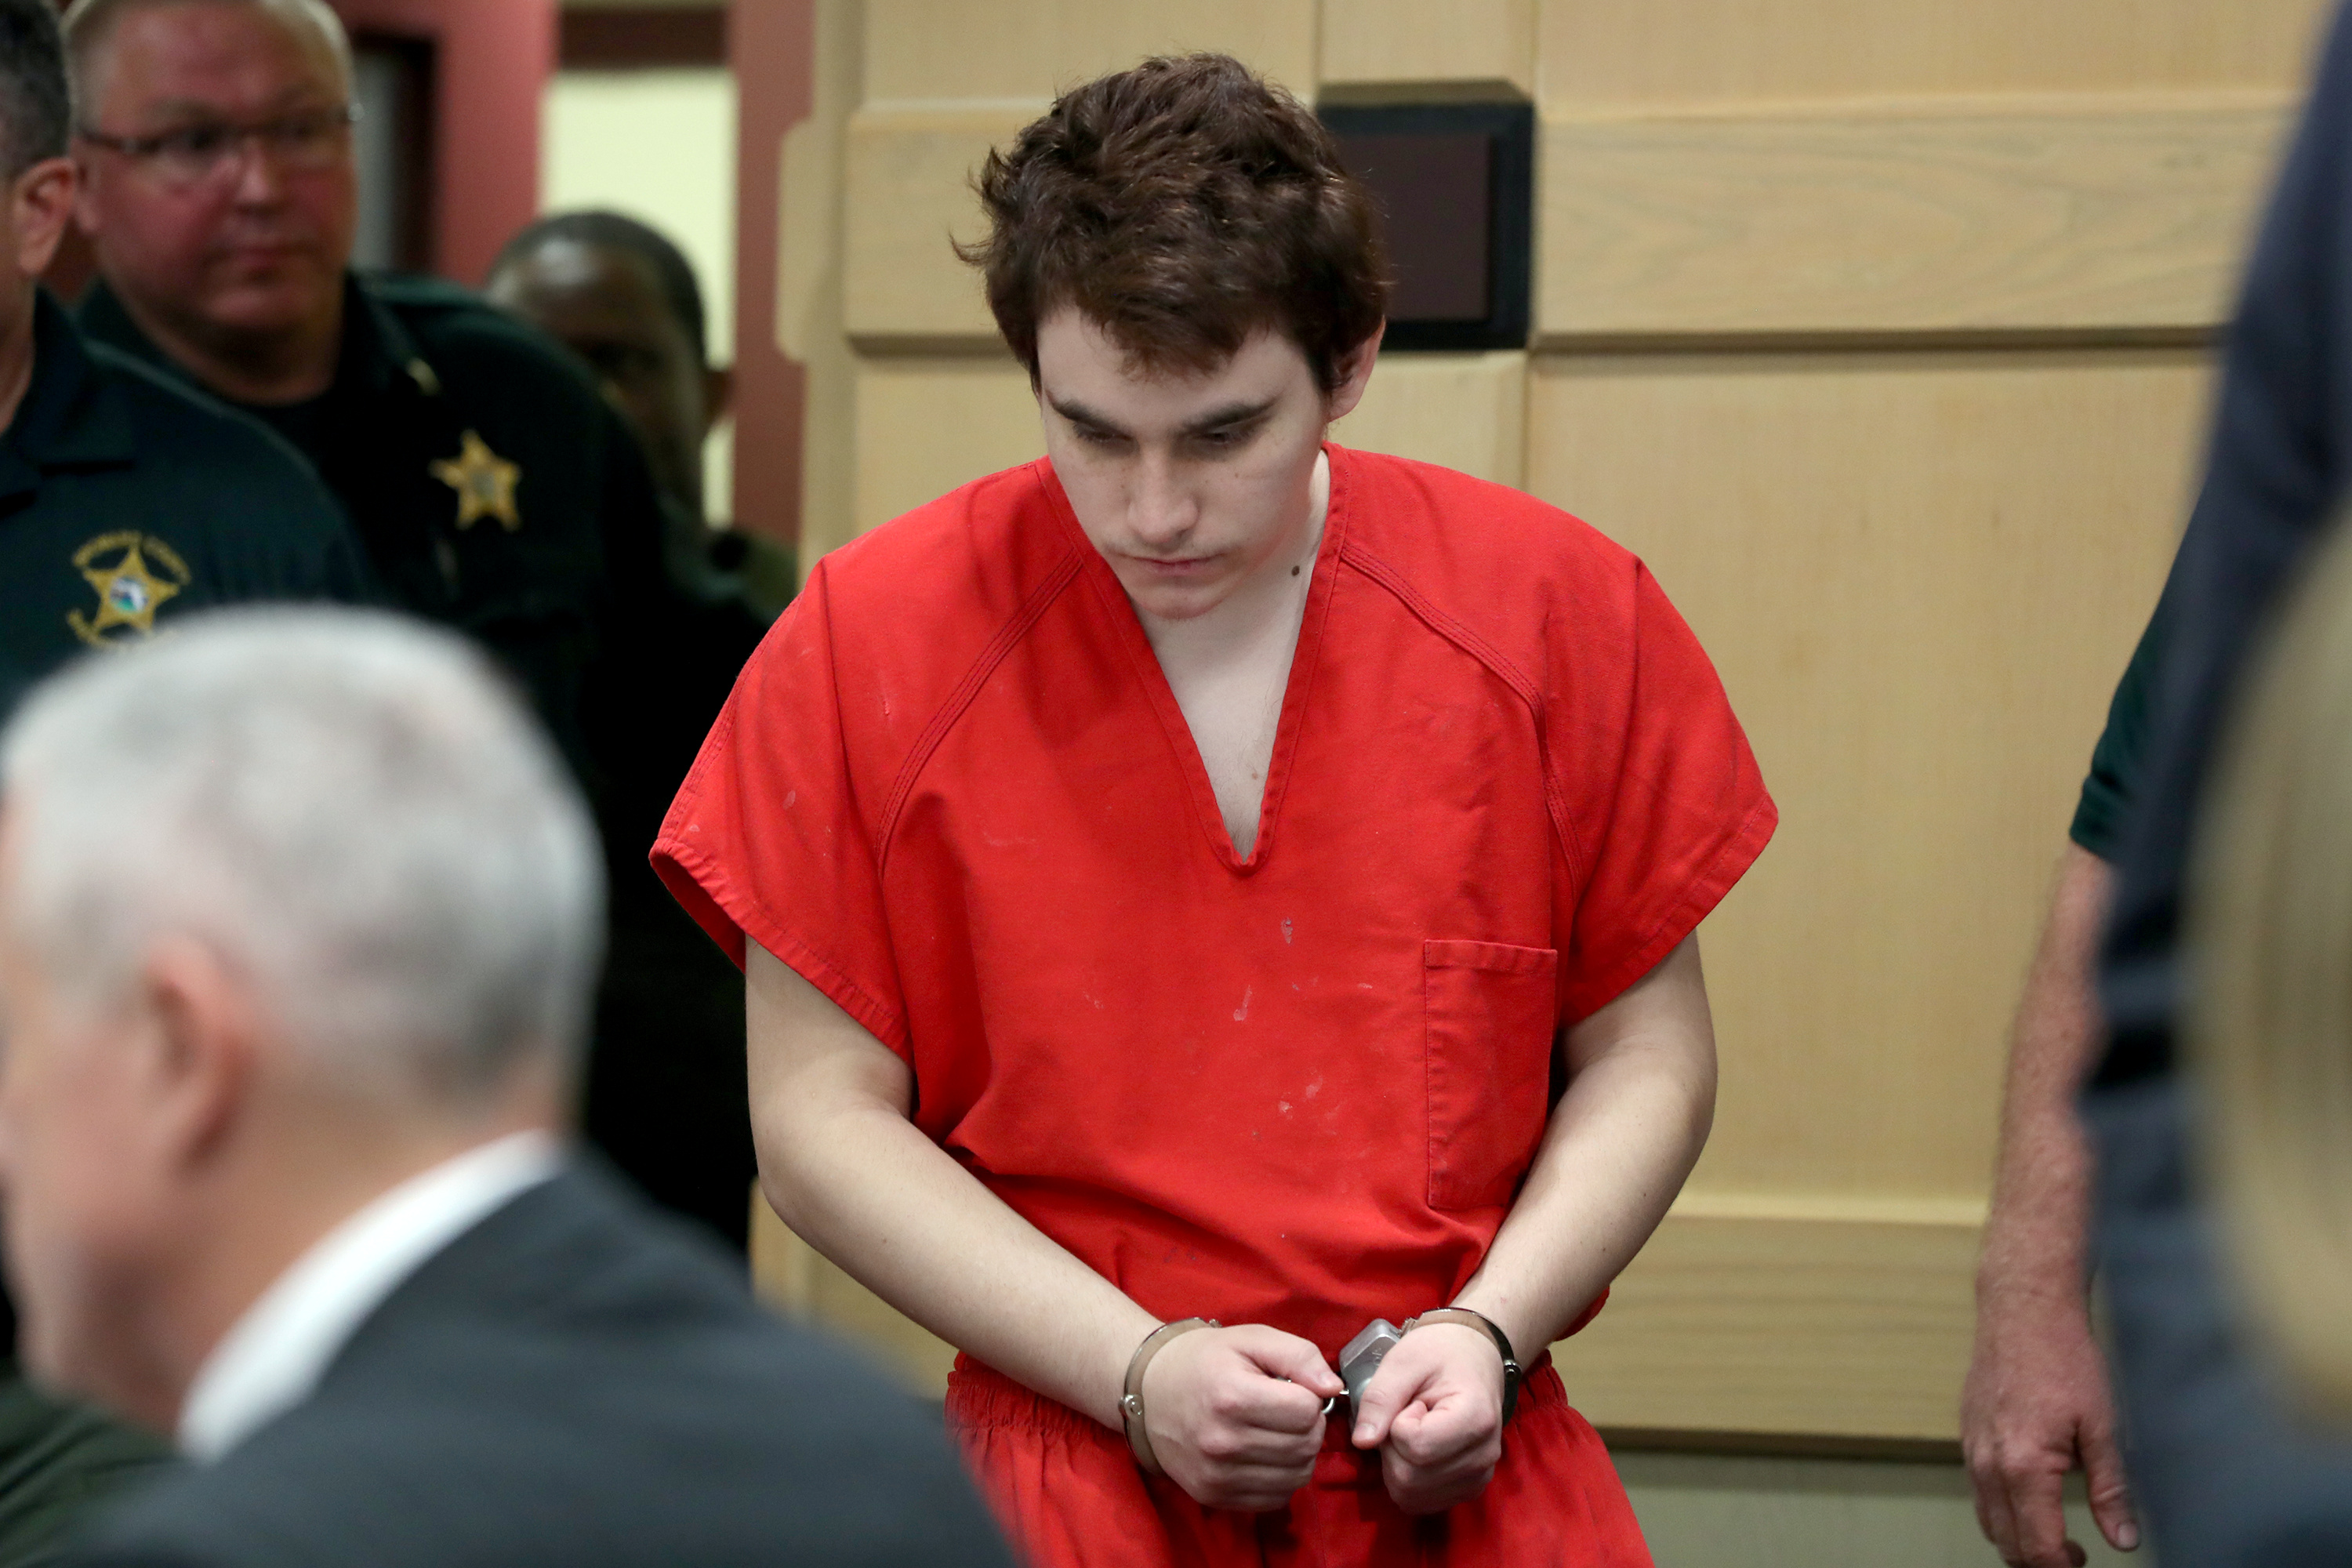 Accused Parkland High School shooter Nikolas Cruz enters the courtroom prior to a hearing at the Broward County Courthouse in Fort Lauderdale, Florida, U.S., September 26, 2018. Amy Beth Bennett/South Florida Sun Sentinel/Pool via REUTERS